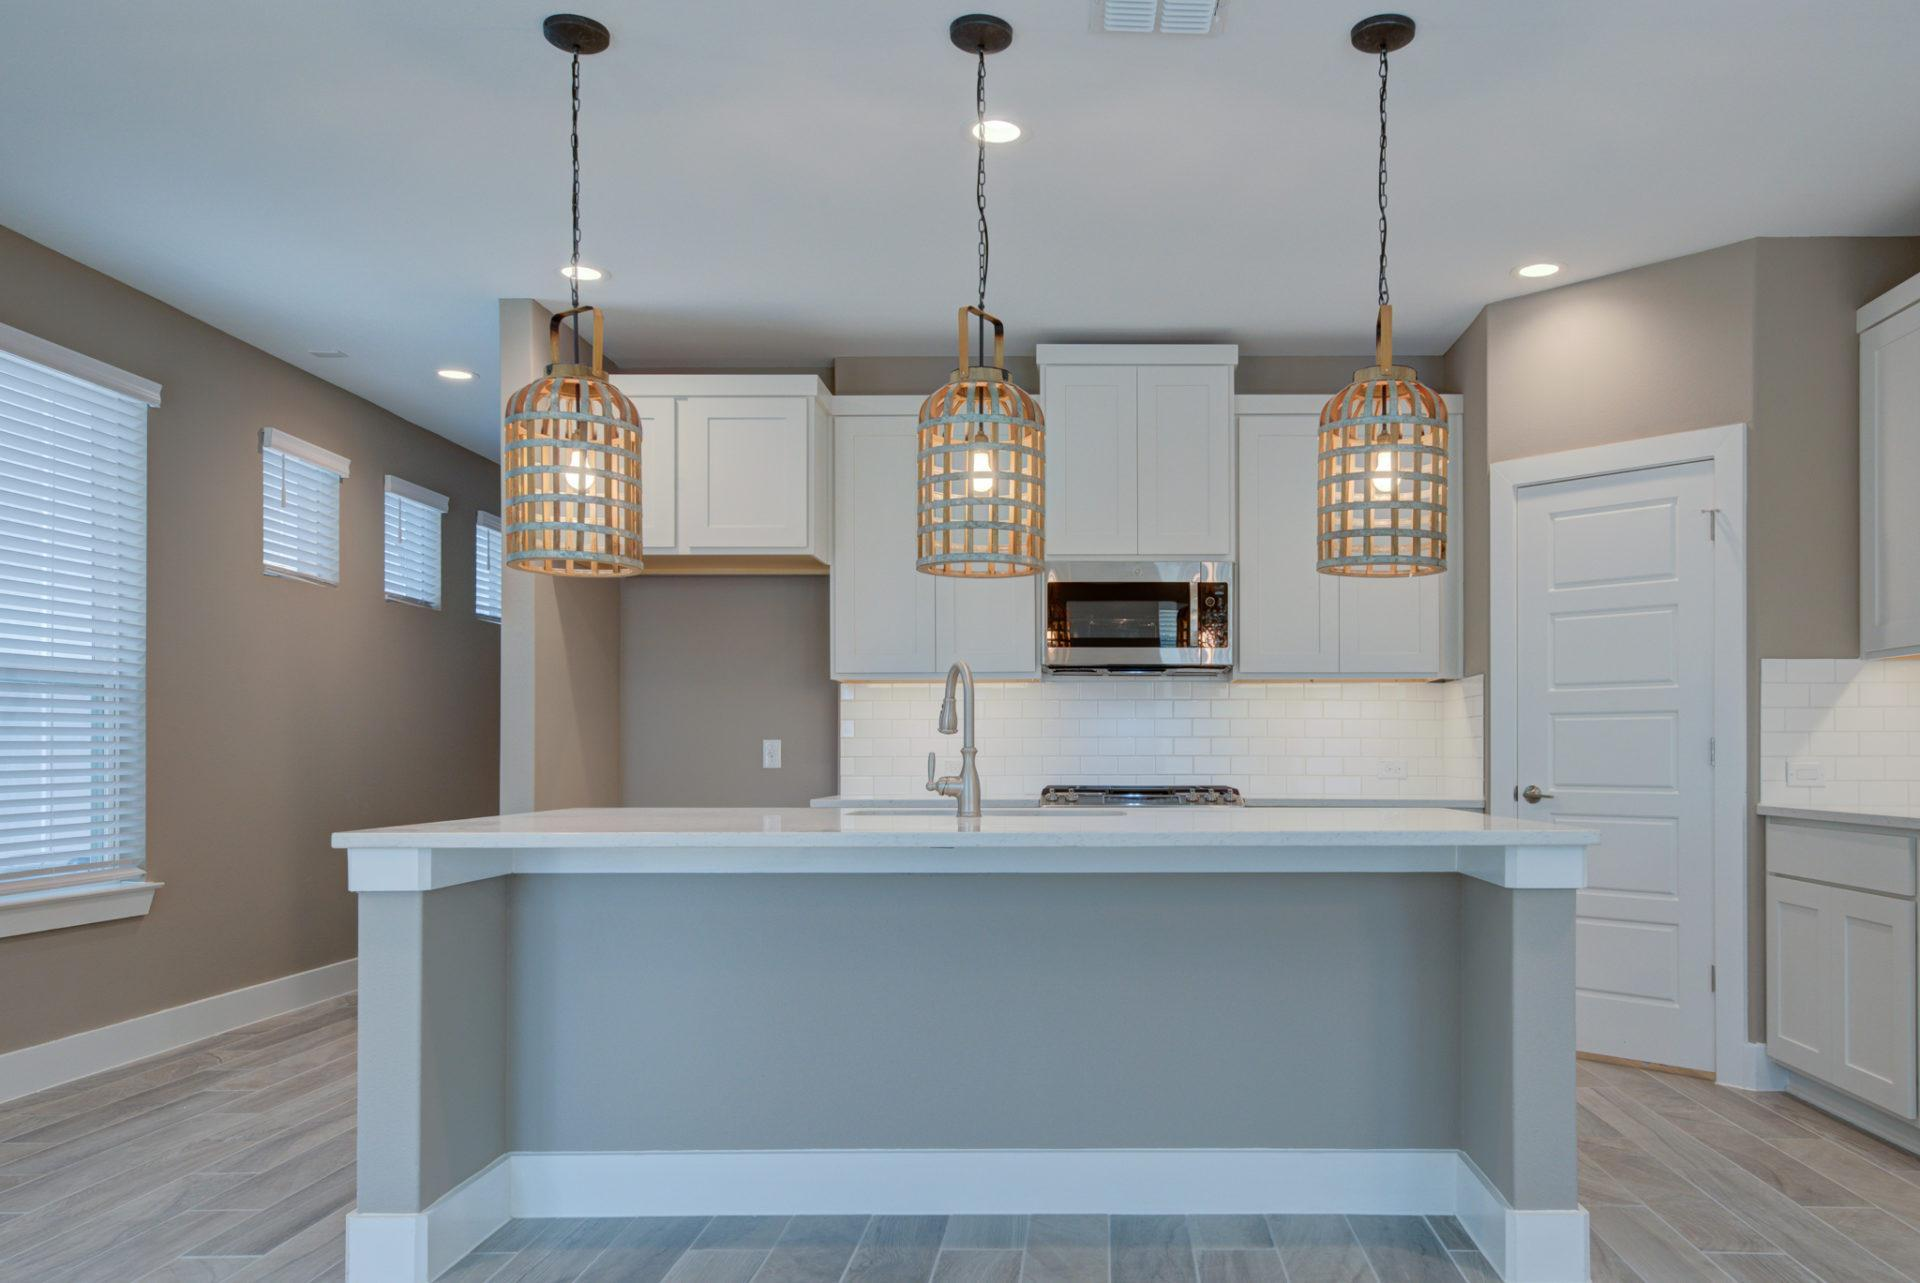 Kitchen featured in the Leon Creek By Casina Creek Homes, LLC in San Antonio, TX